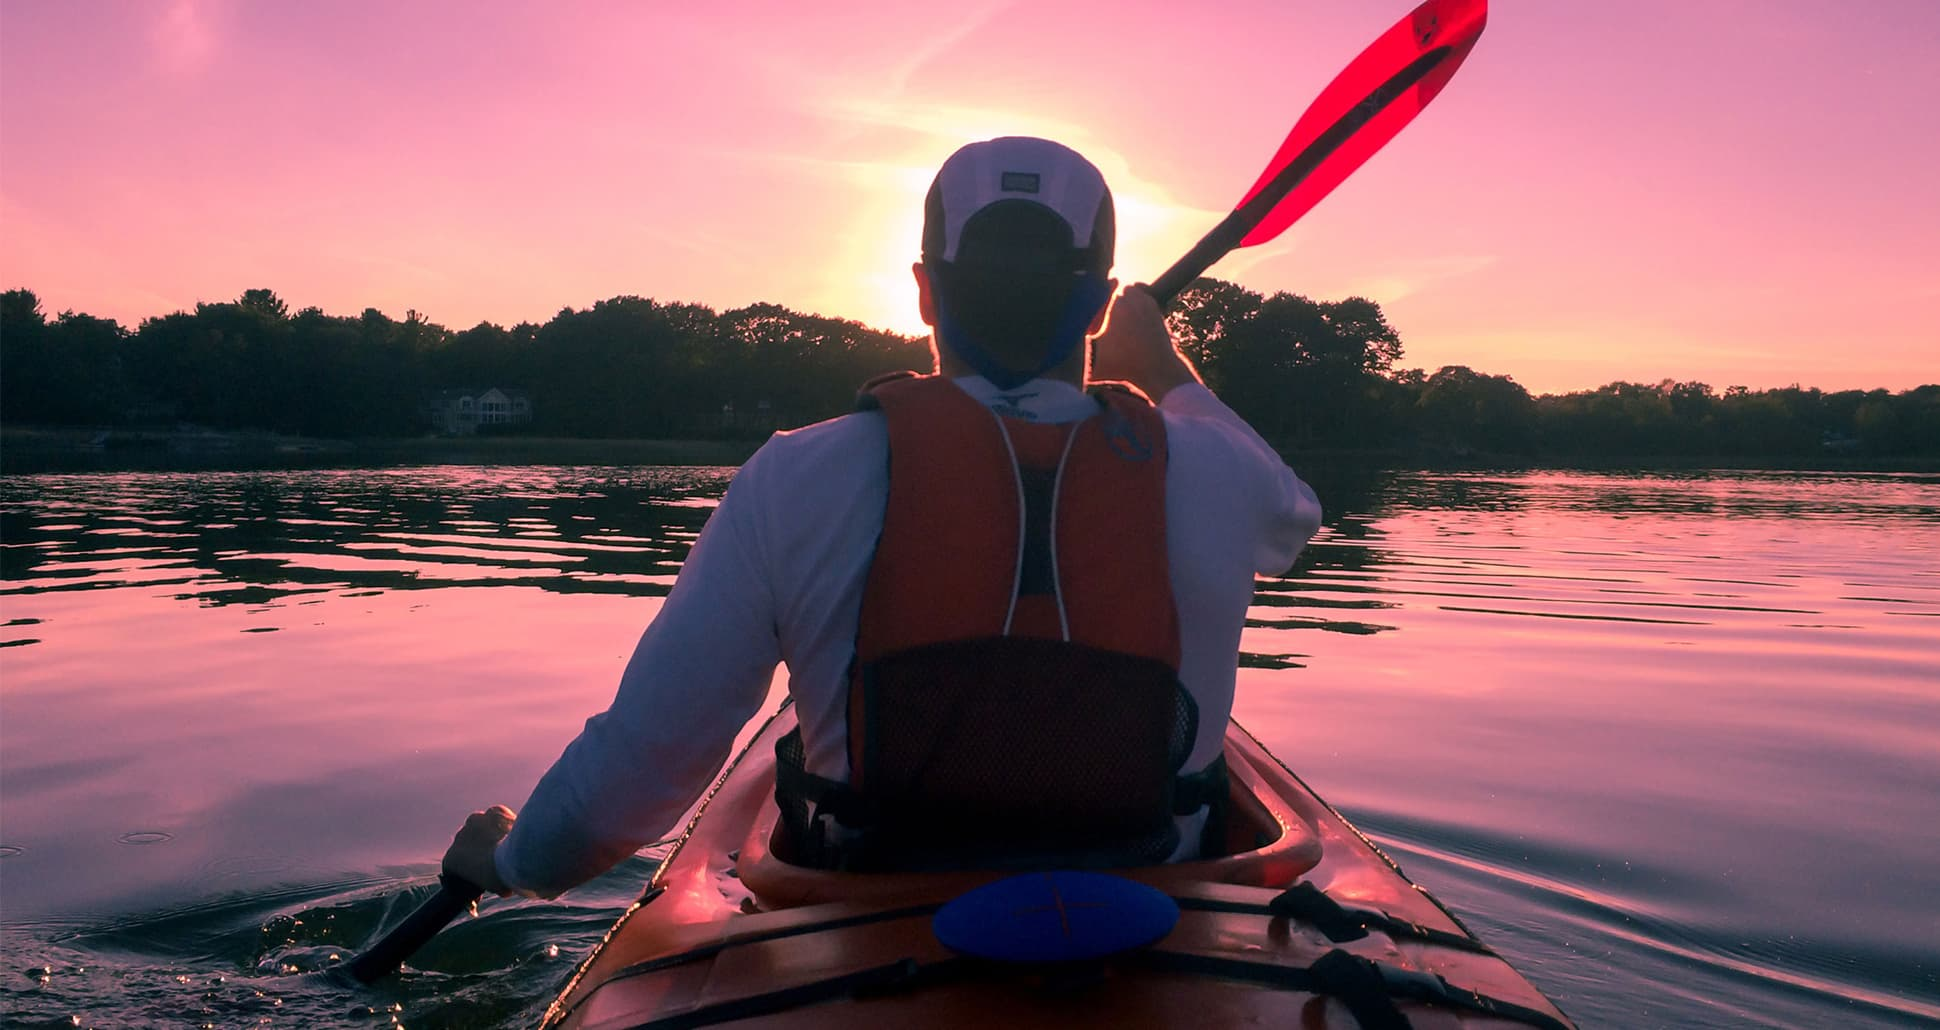 Adventure Therapy - Kayaking